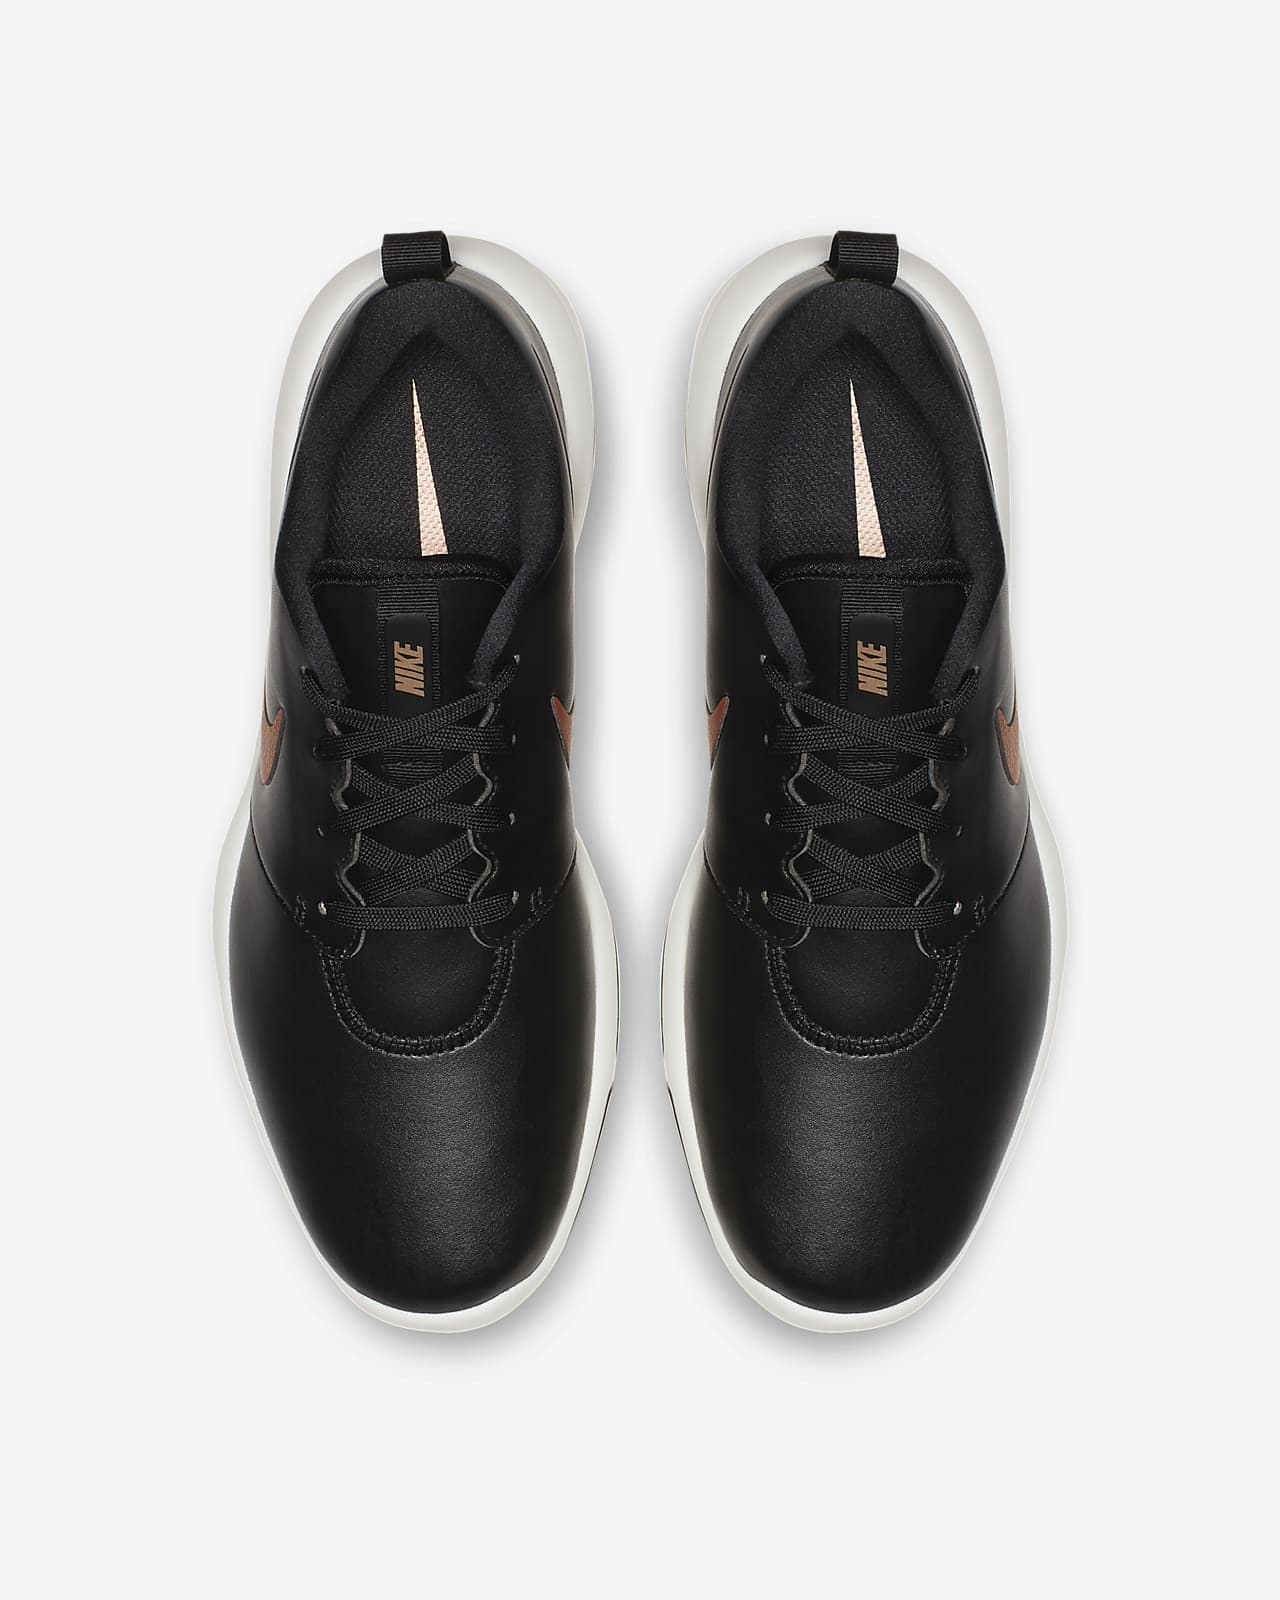 nike women's shoes leather